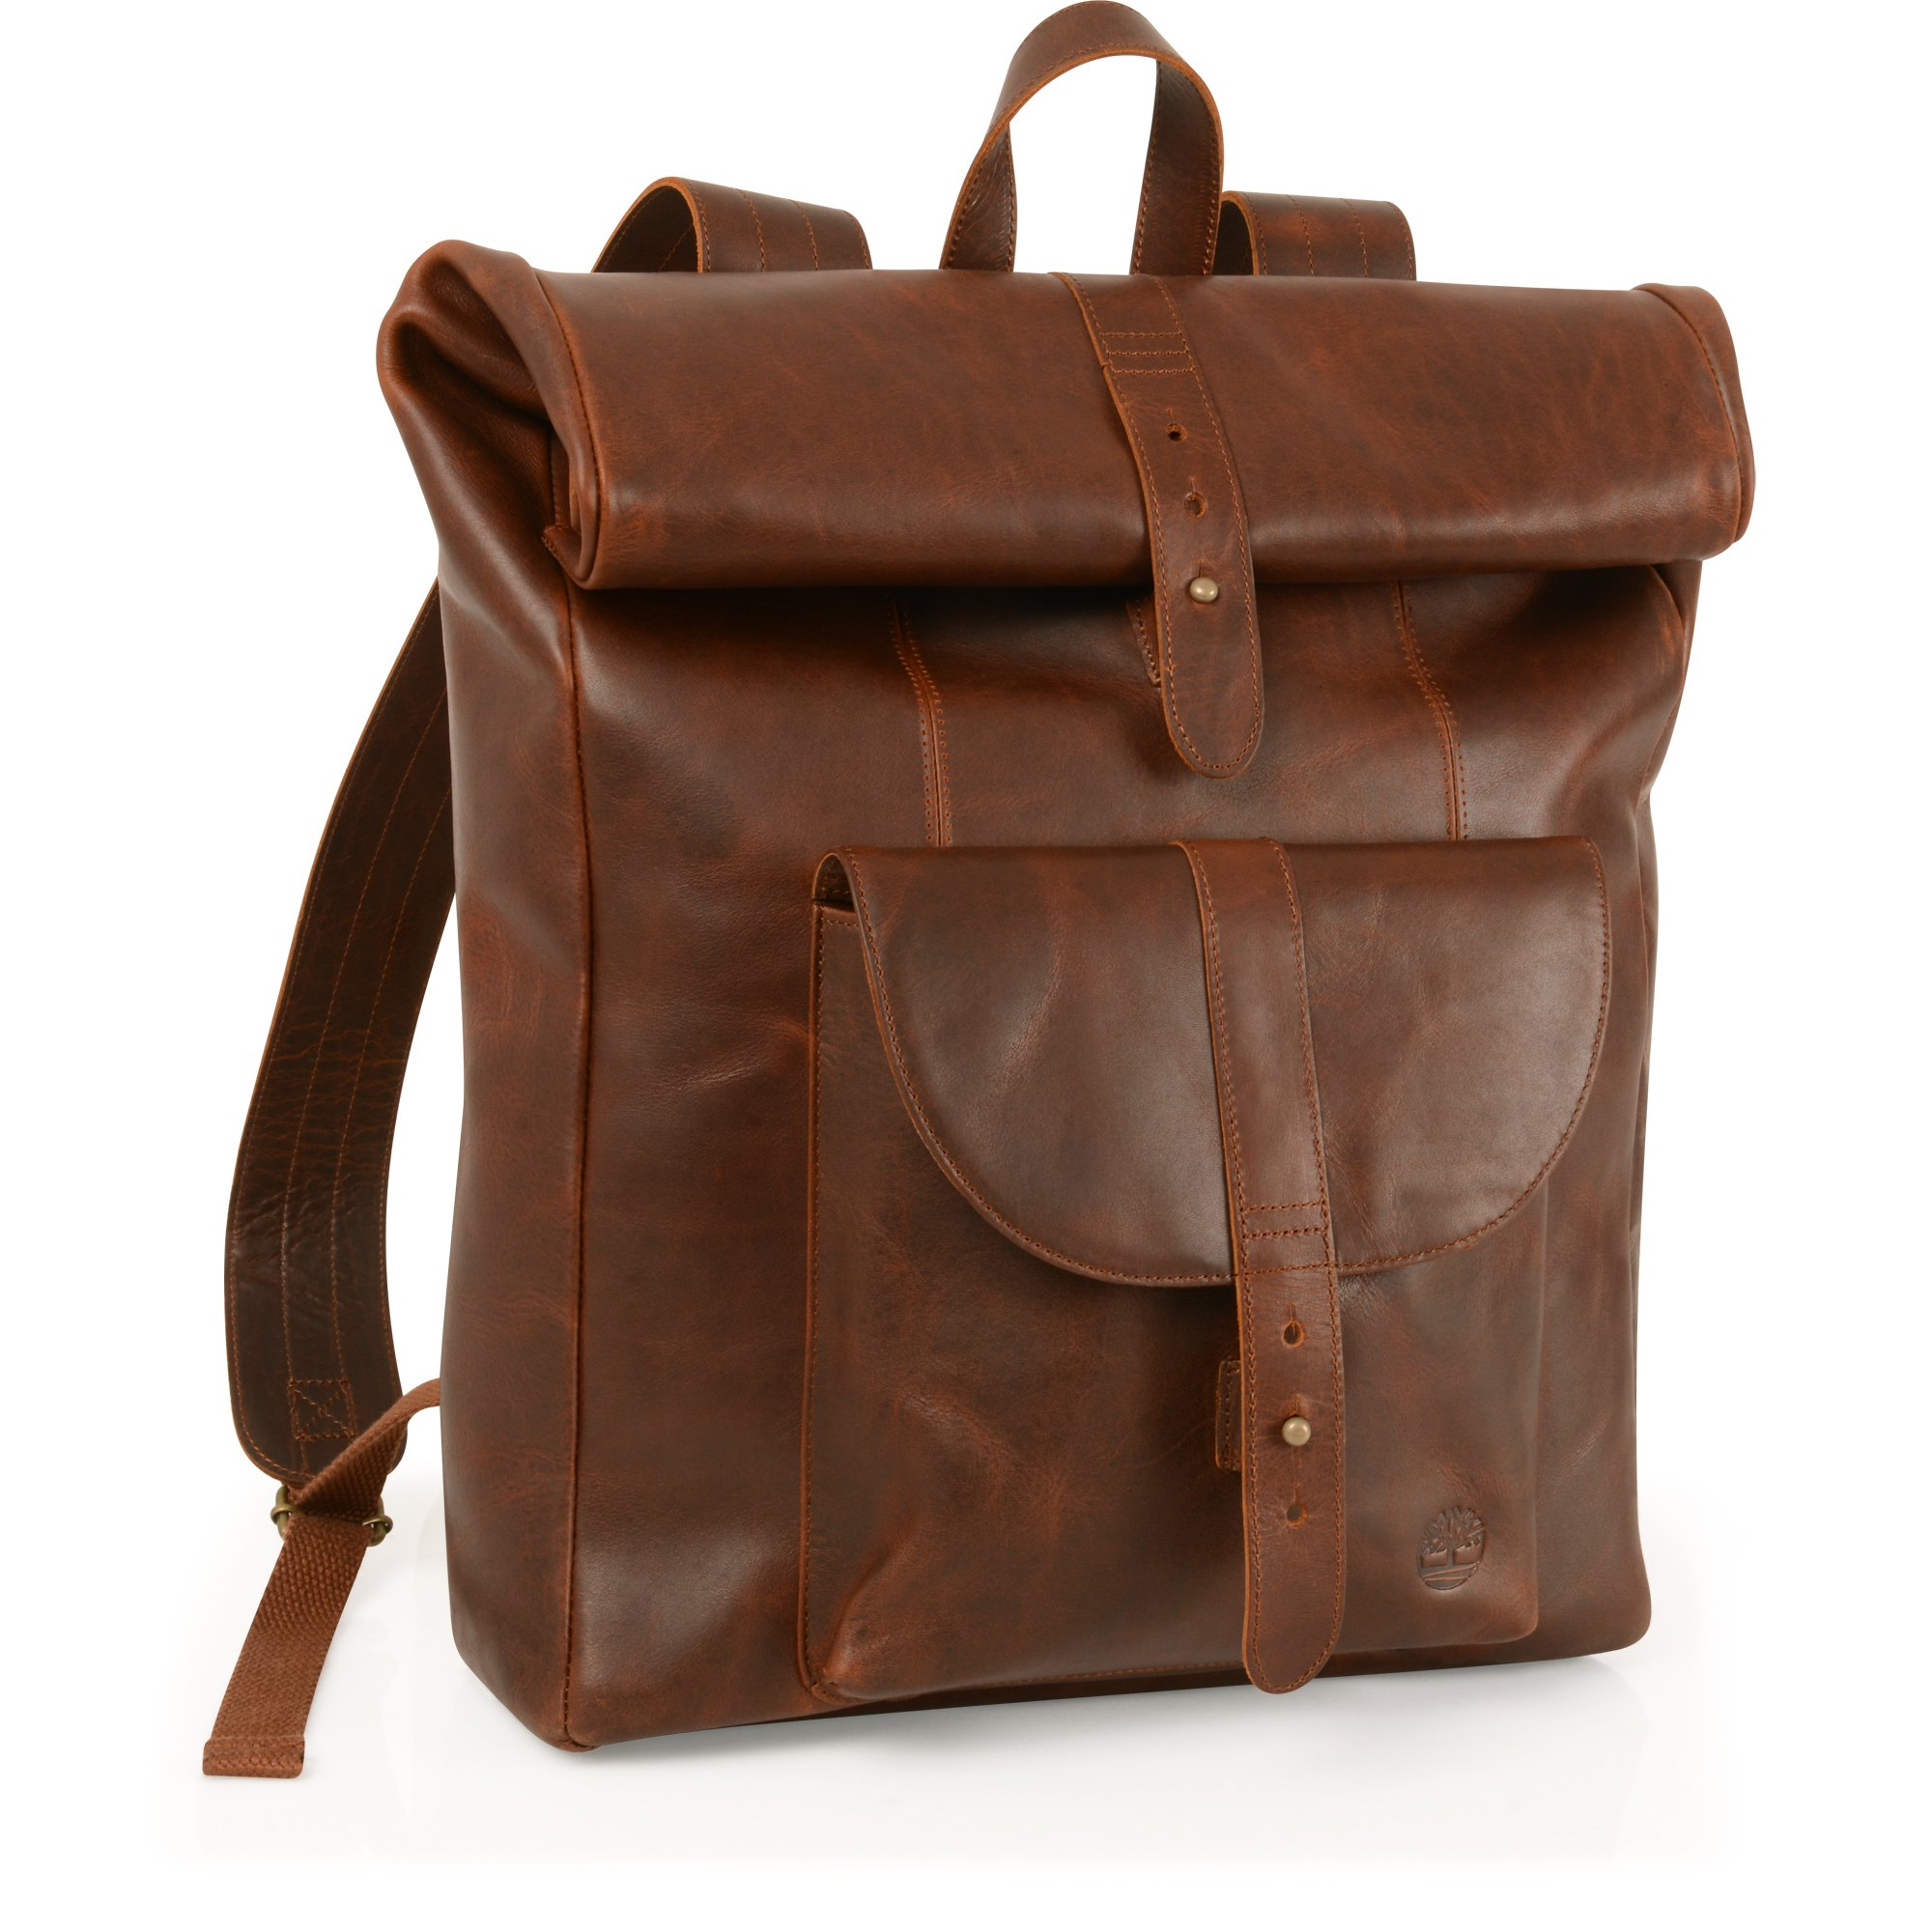 Timberland Calexico Roll Top Backpack, Glazed Ginger, One Size